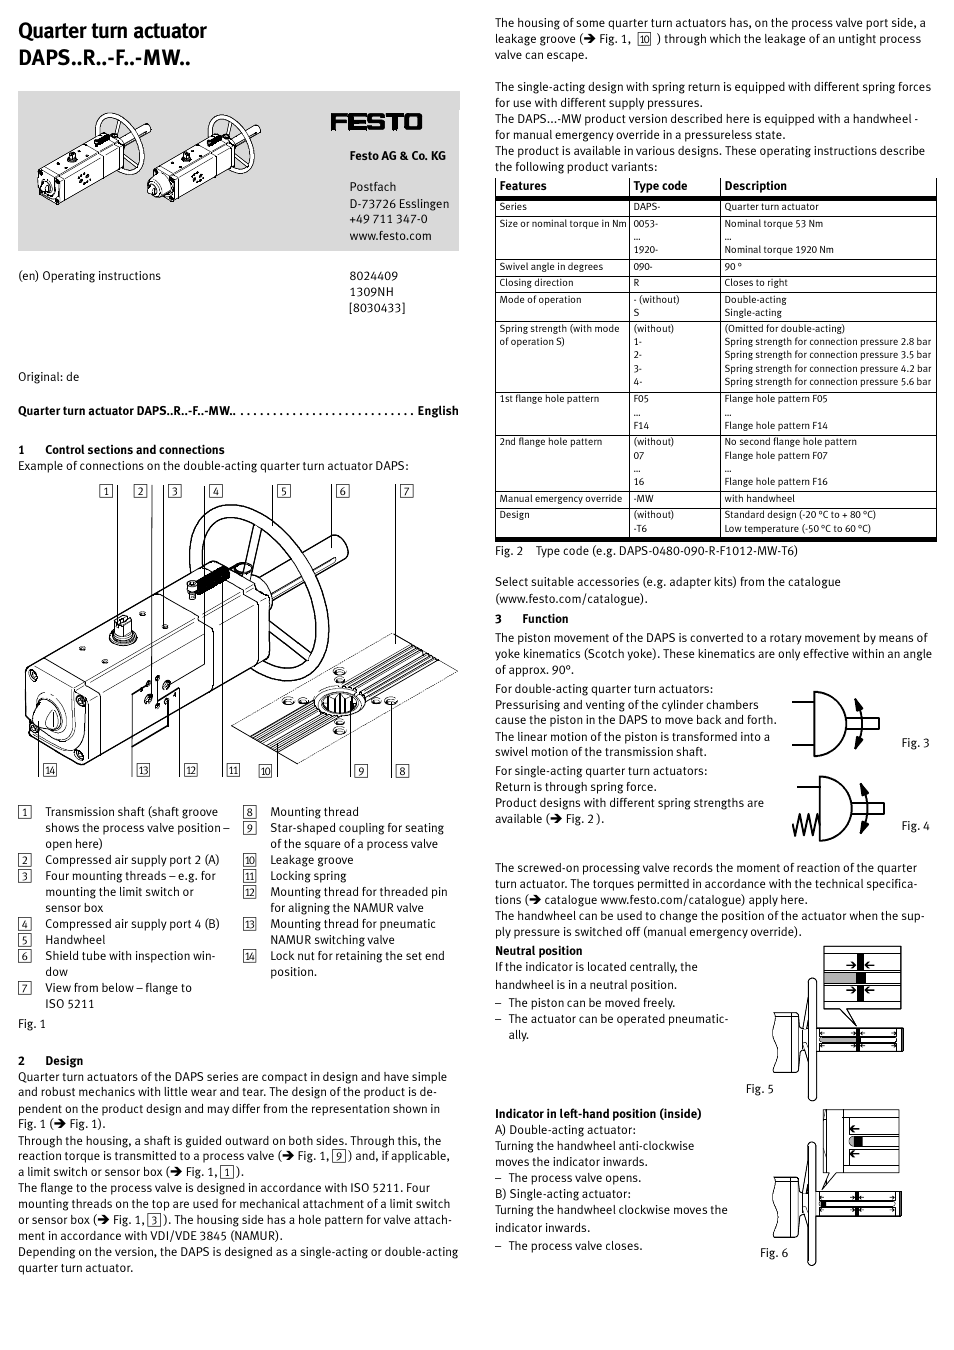 Festo Limit Switch Wiring Diagram Electrical Pri Sypar Daps User Manual 5 Pages Honeywell Control